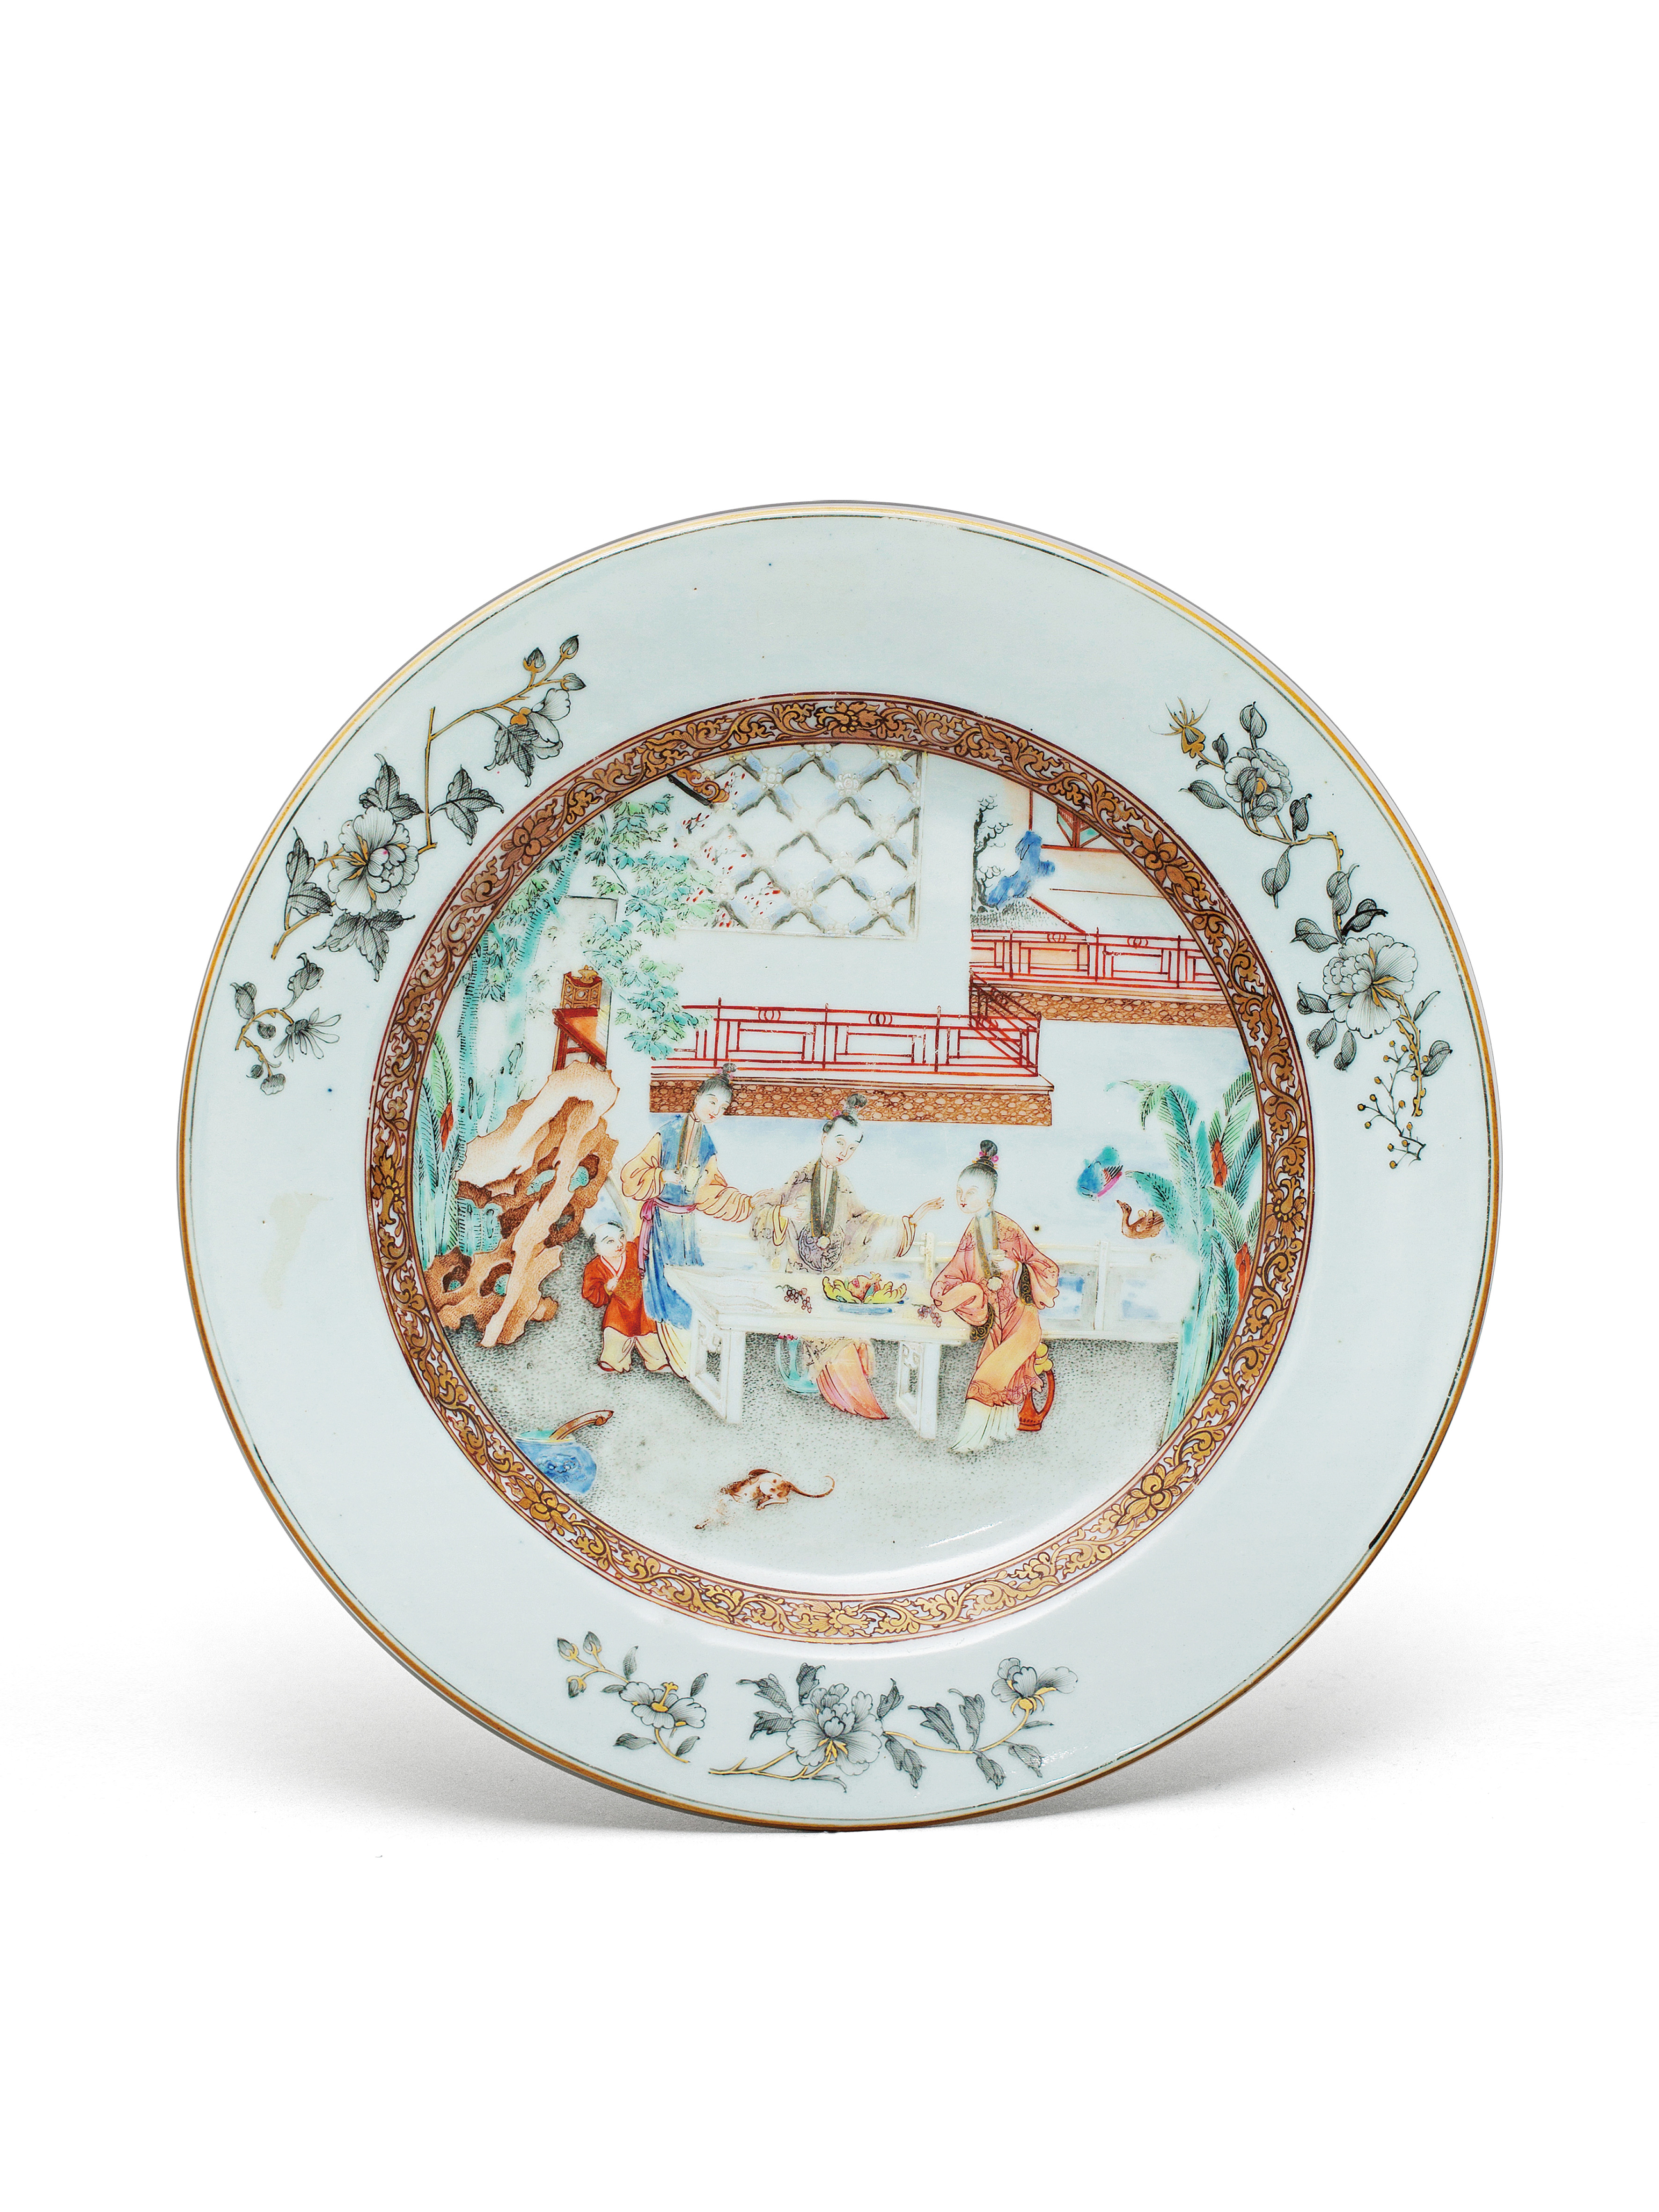 Lot 51 - A famille rose dinner plate Qing Dynasty, Yongzheng Period